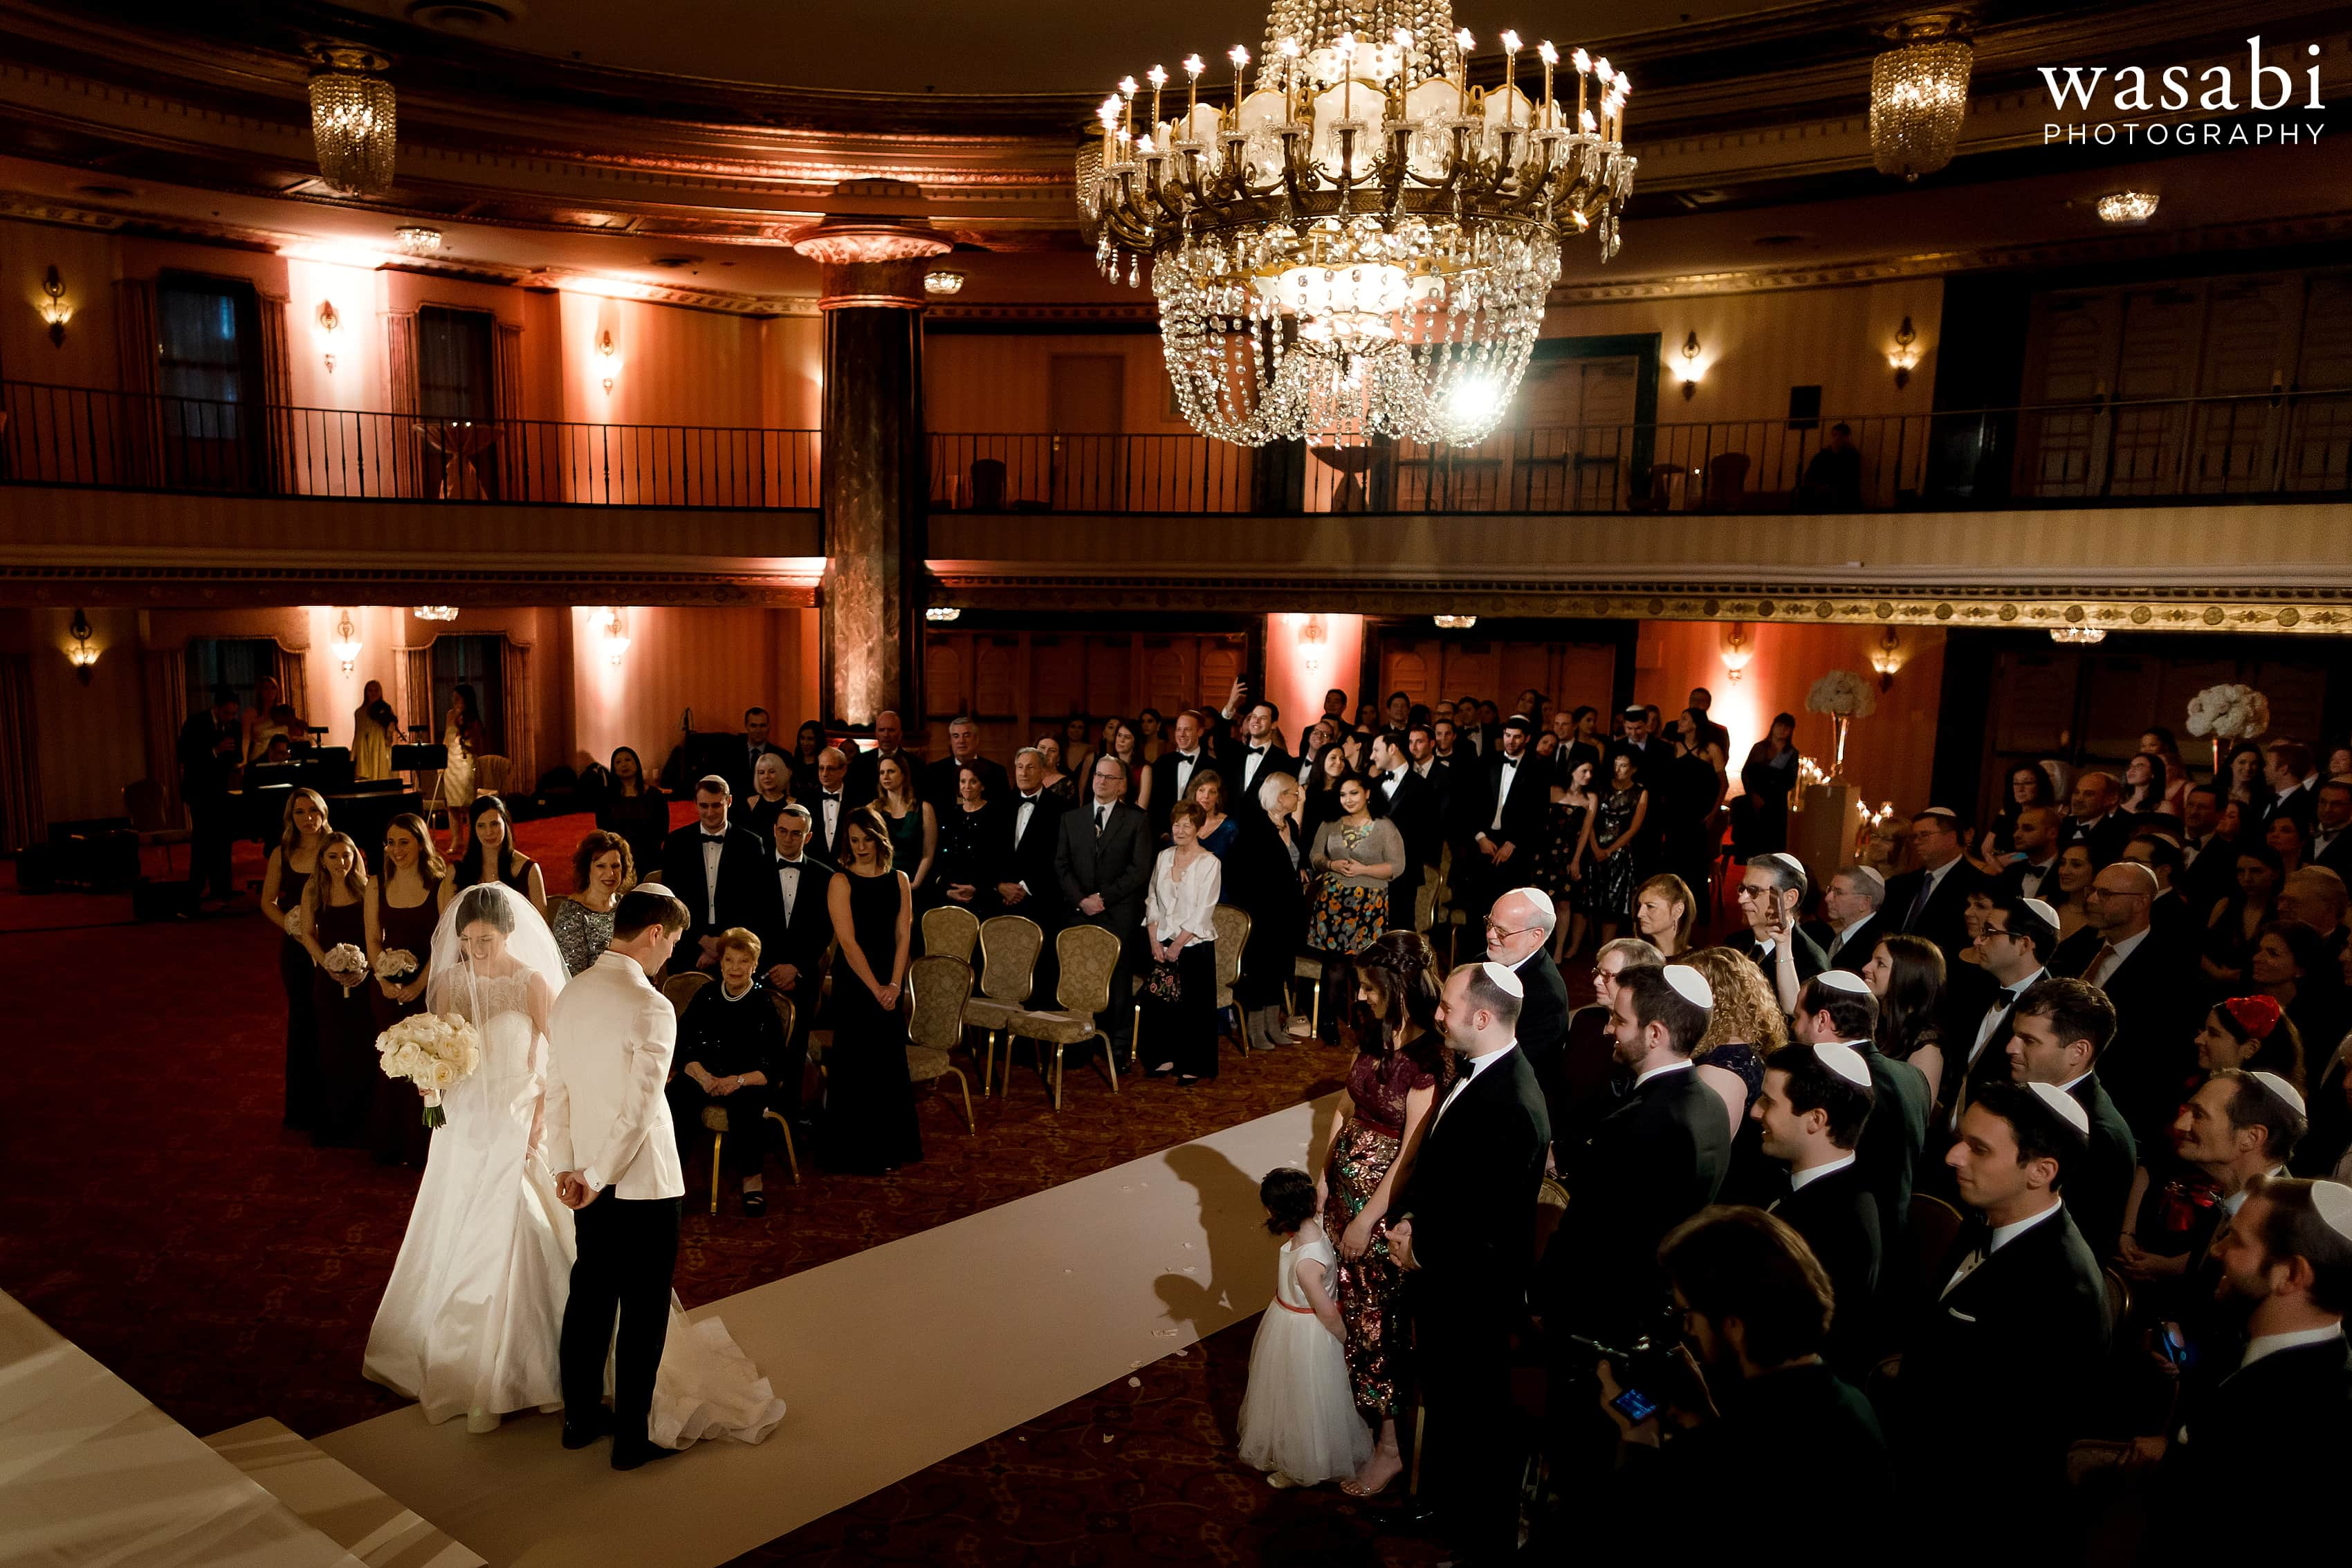 Bride circles Groom as part of hakafot circling ceremony during Jewish wedding ceremony at InterContinental Chicago Magnificent Mile Hotel